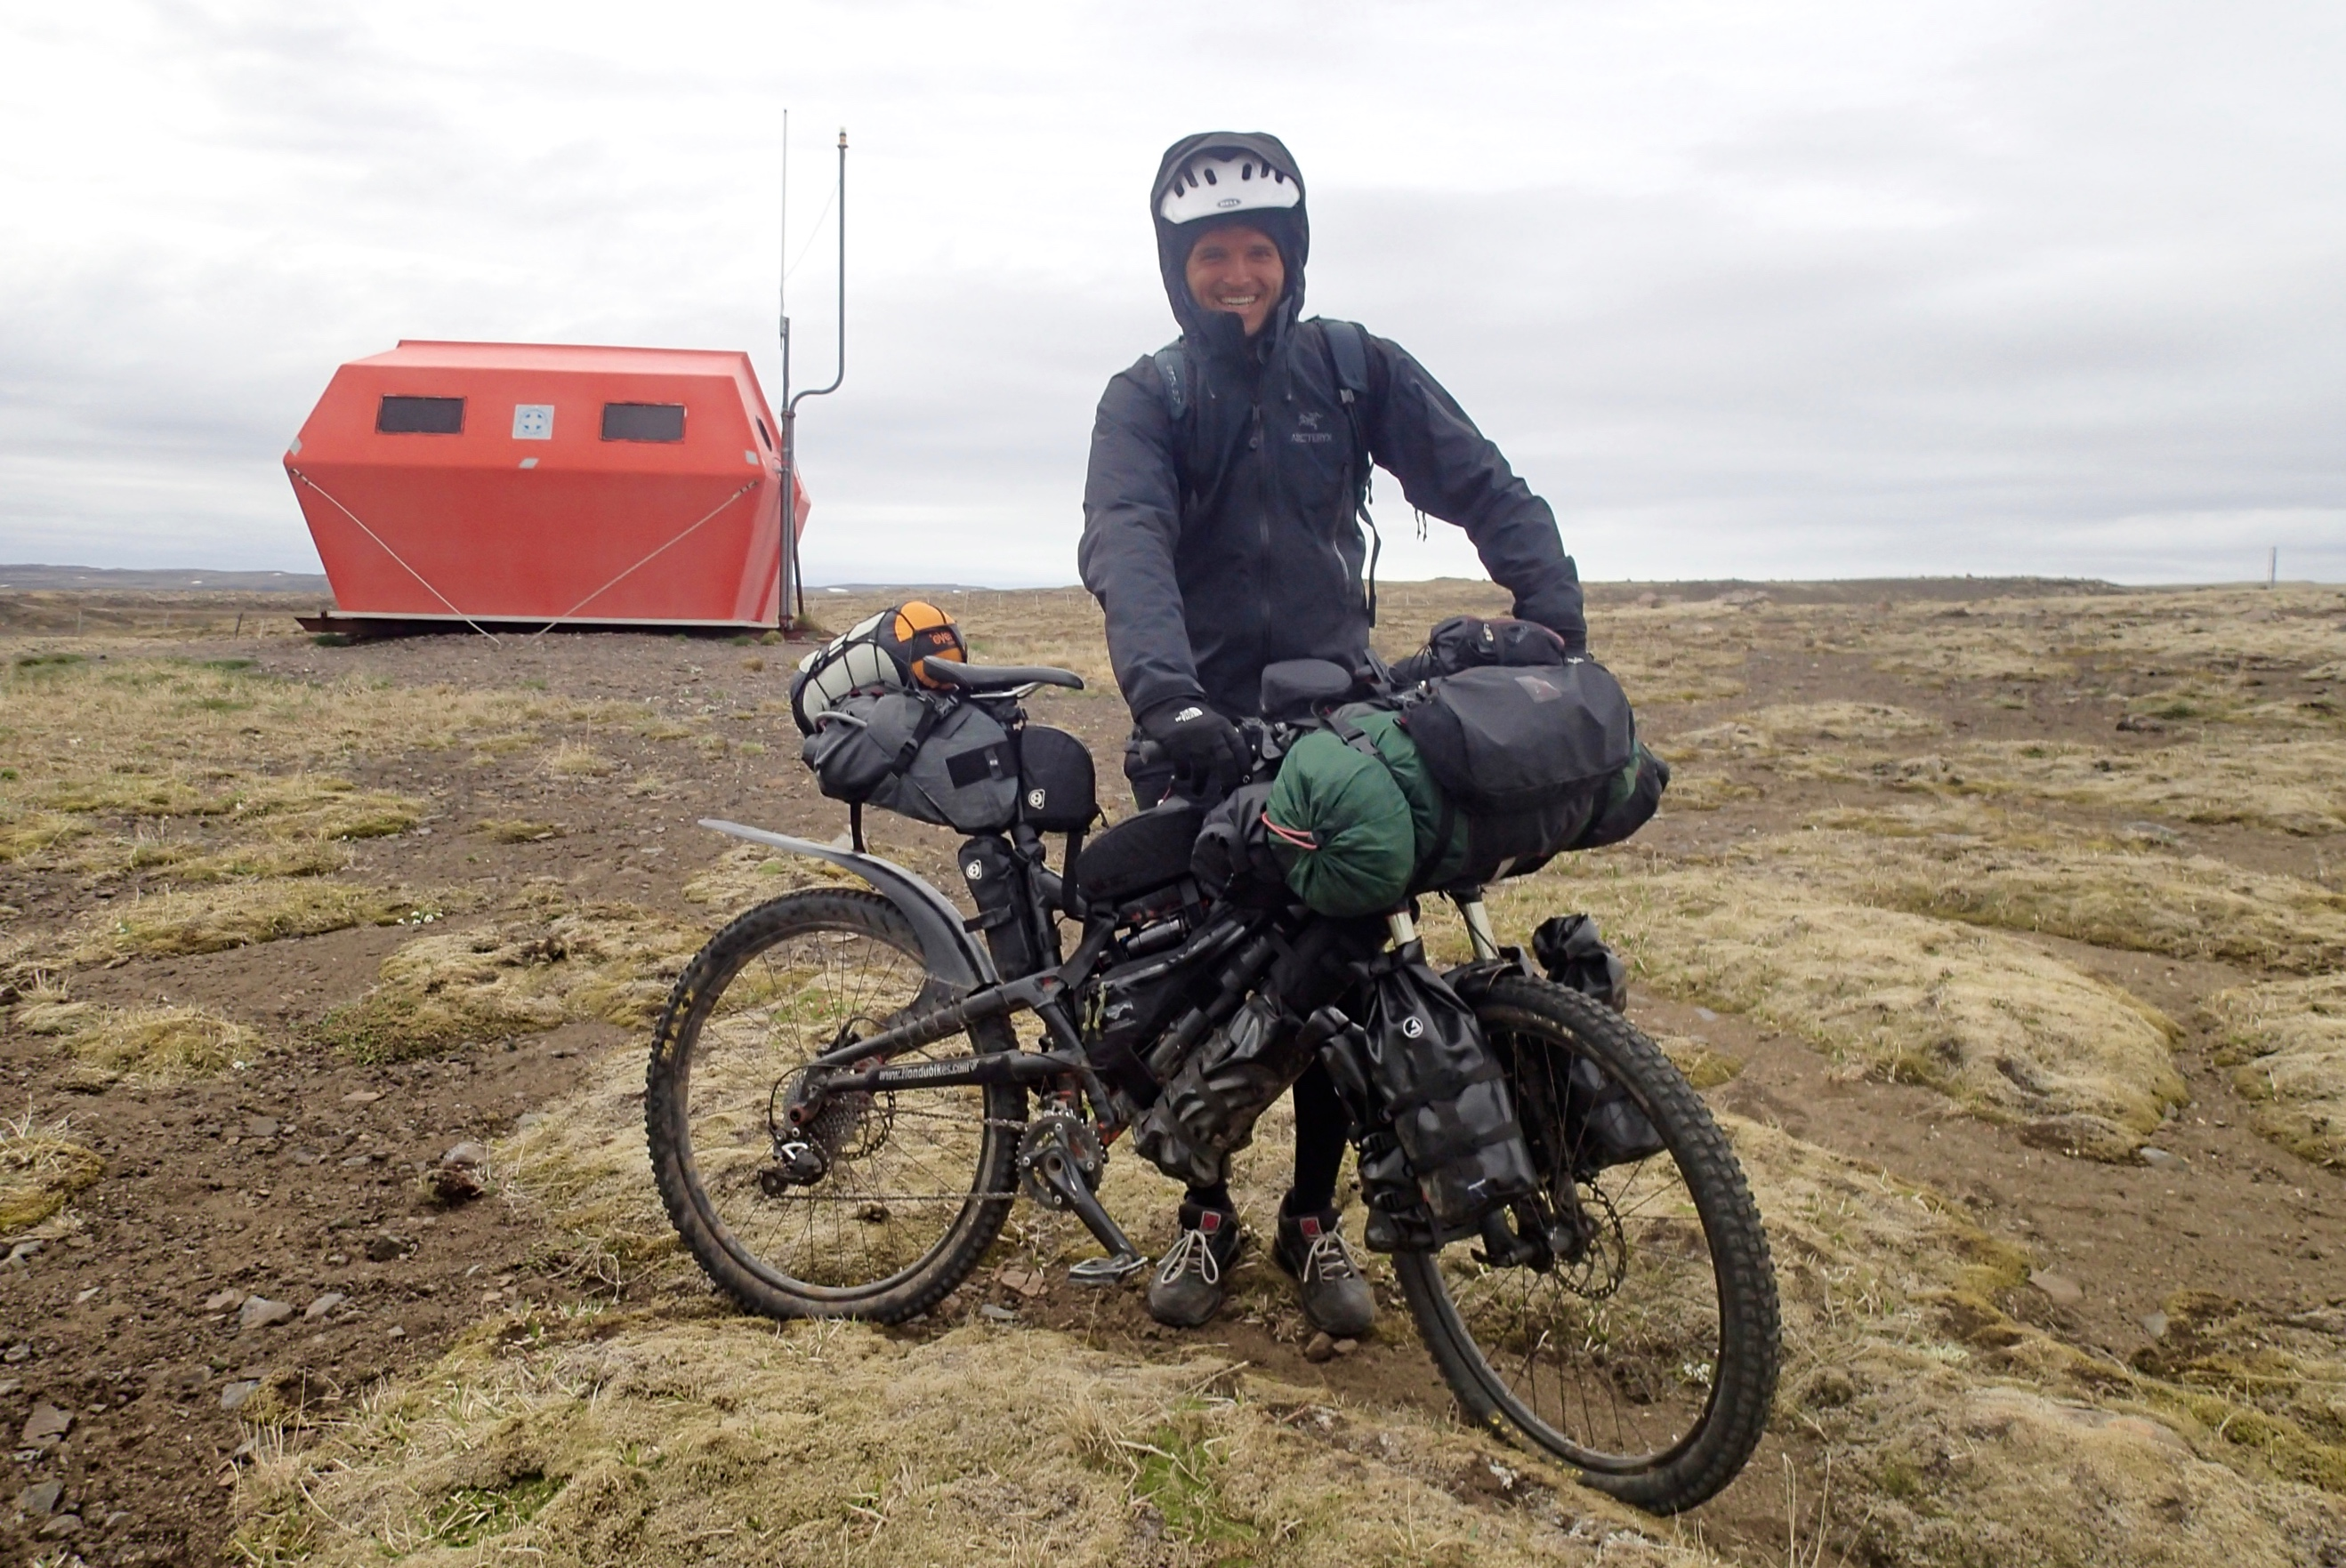 Luke, the Australian bikepacker